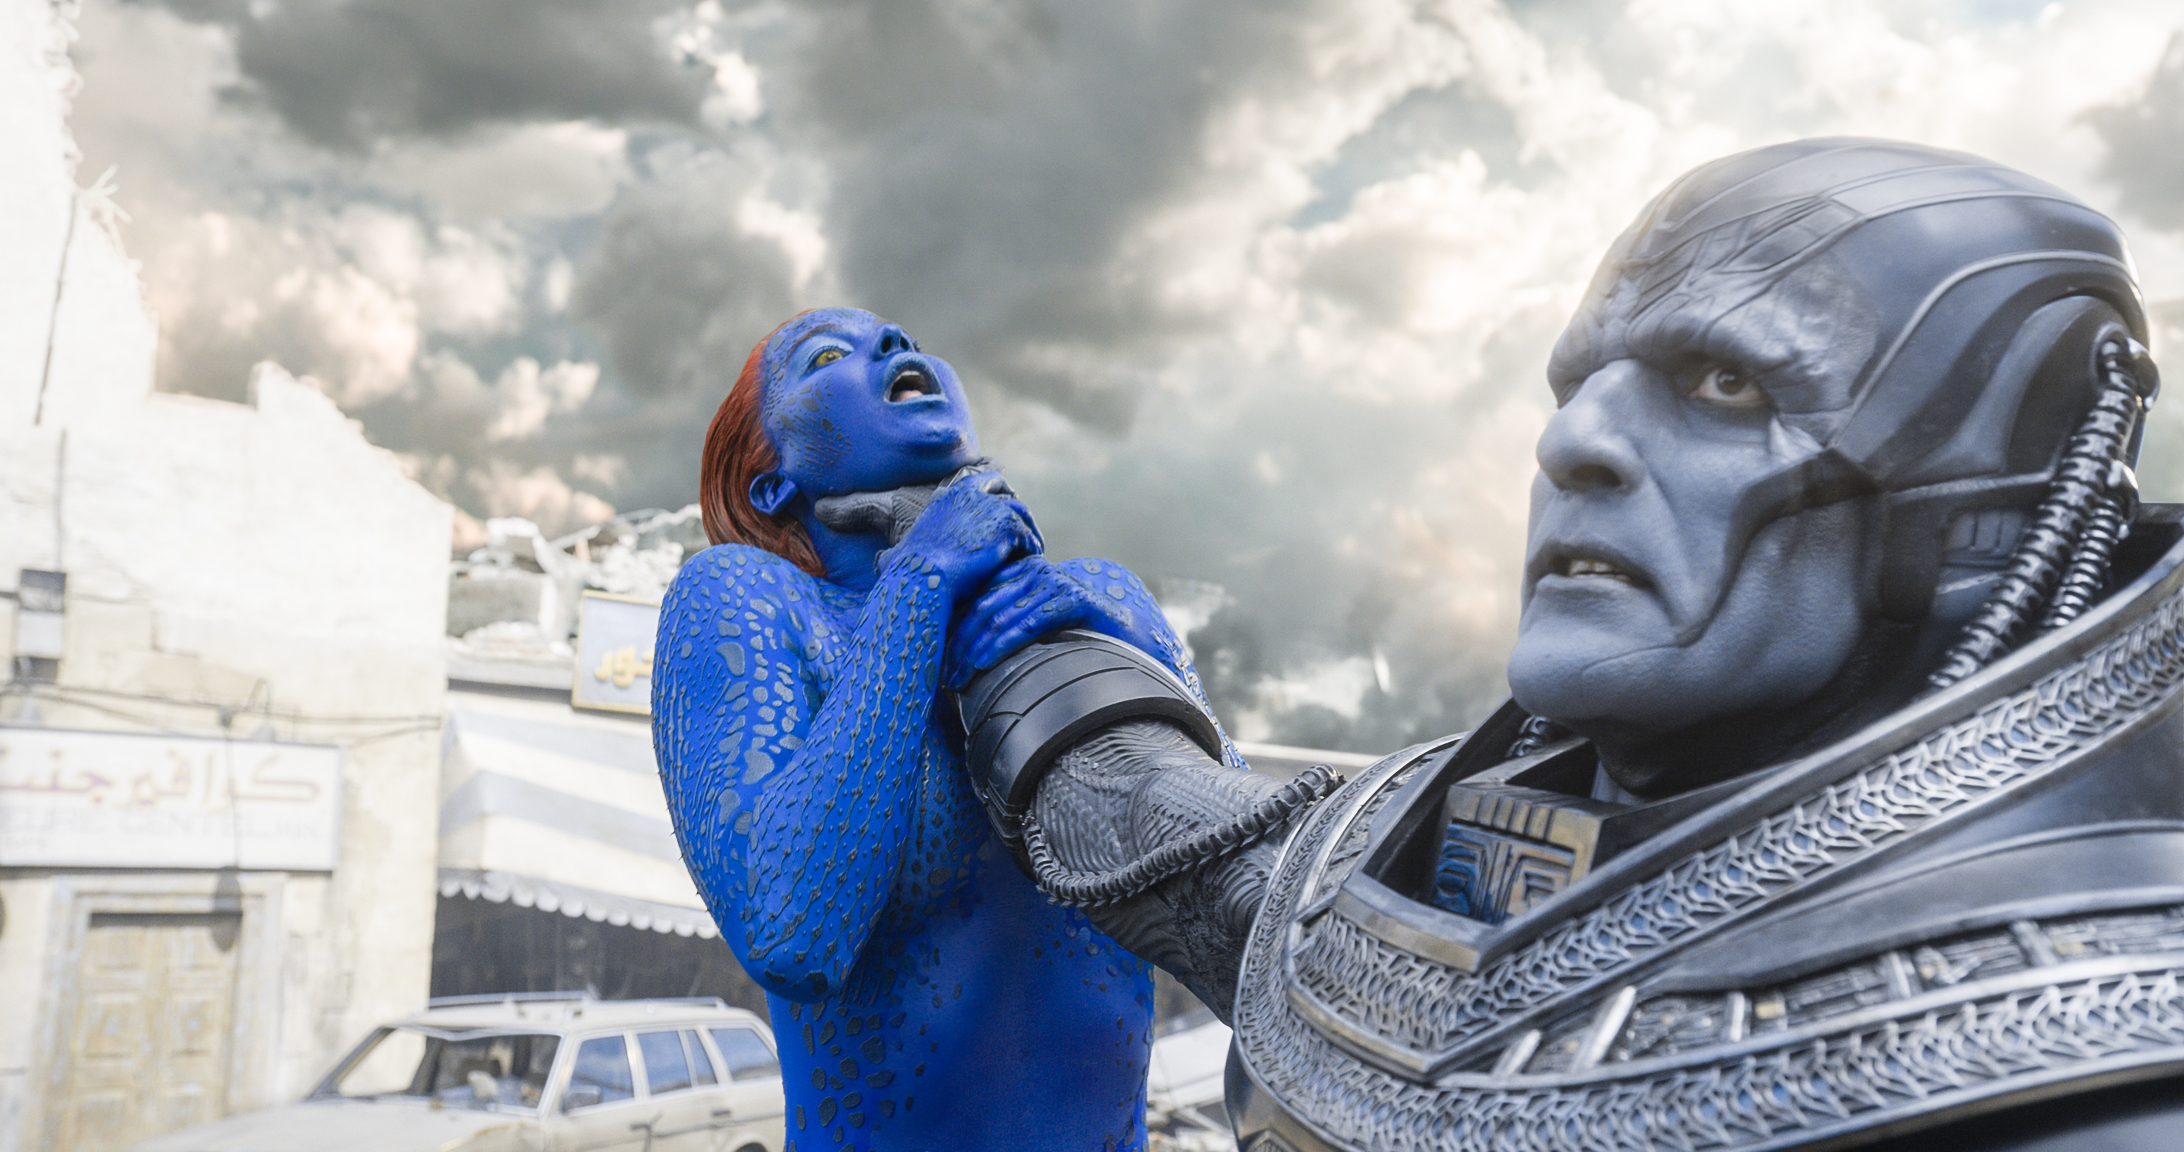 LUUK VS LUUK: X-MEN: APOCALYPSE